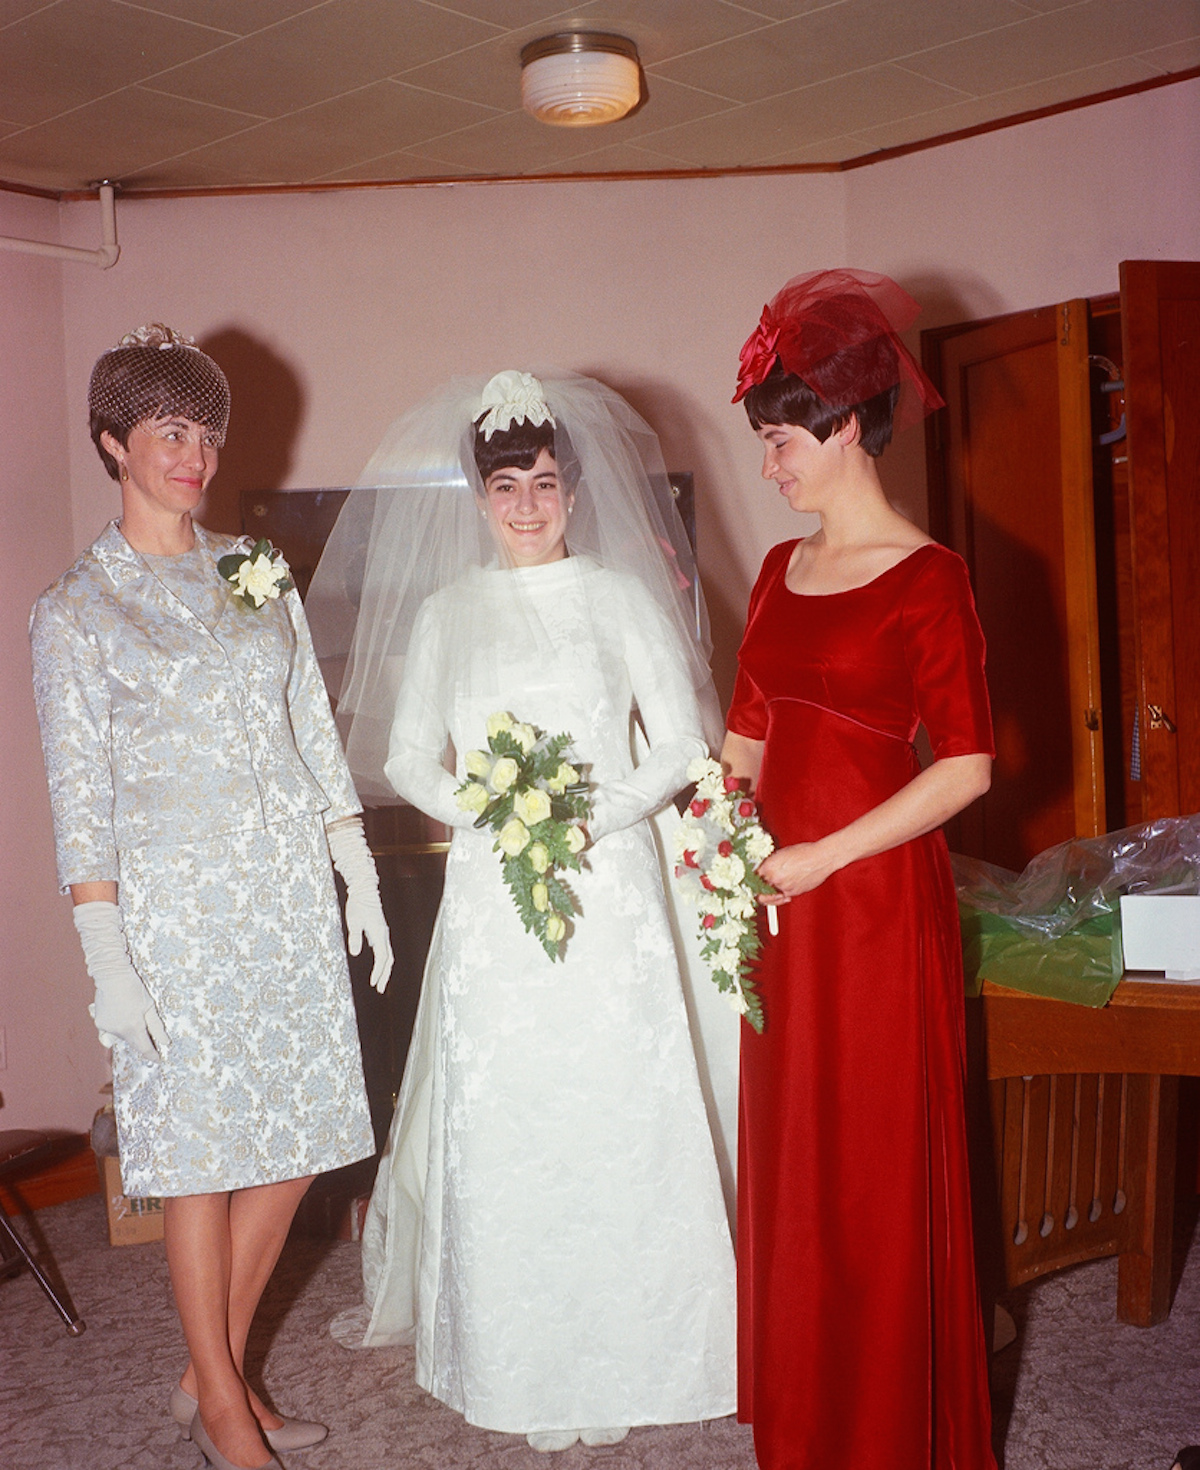 wedding iowa 1968